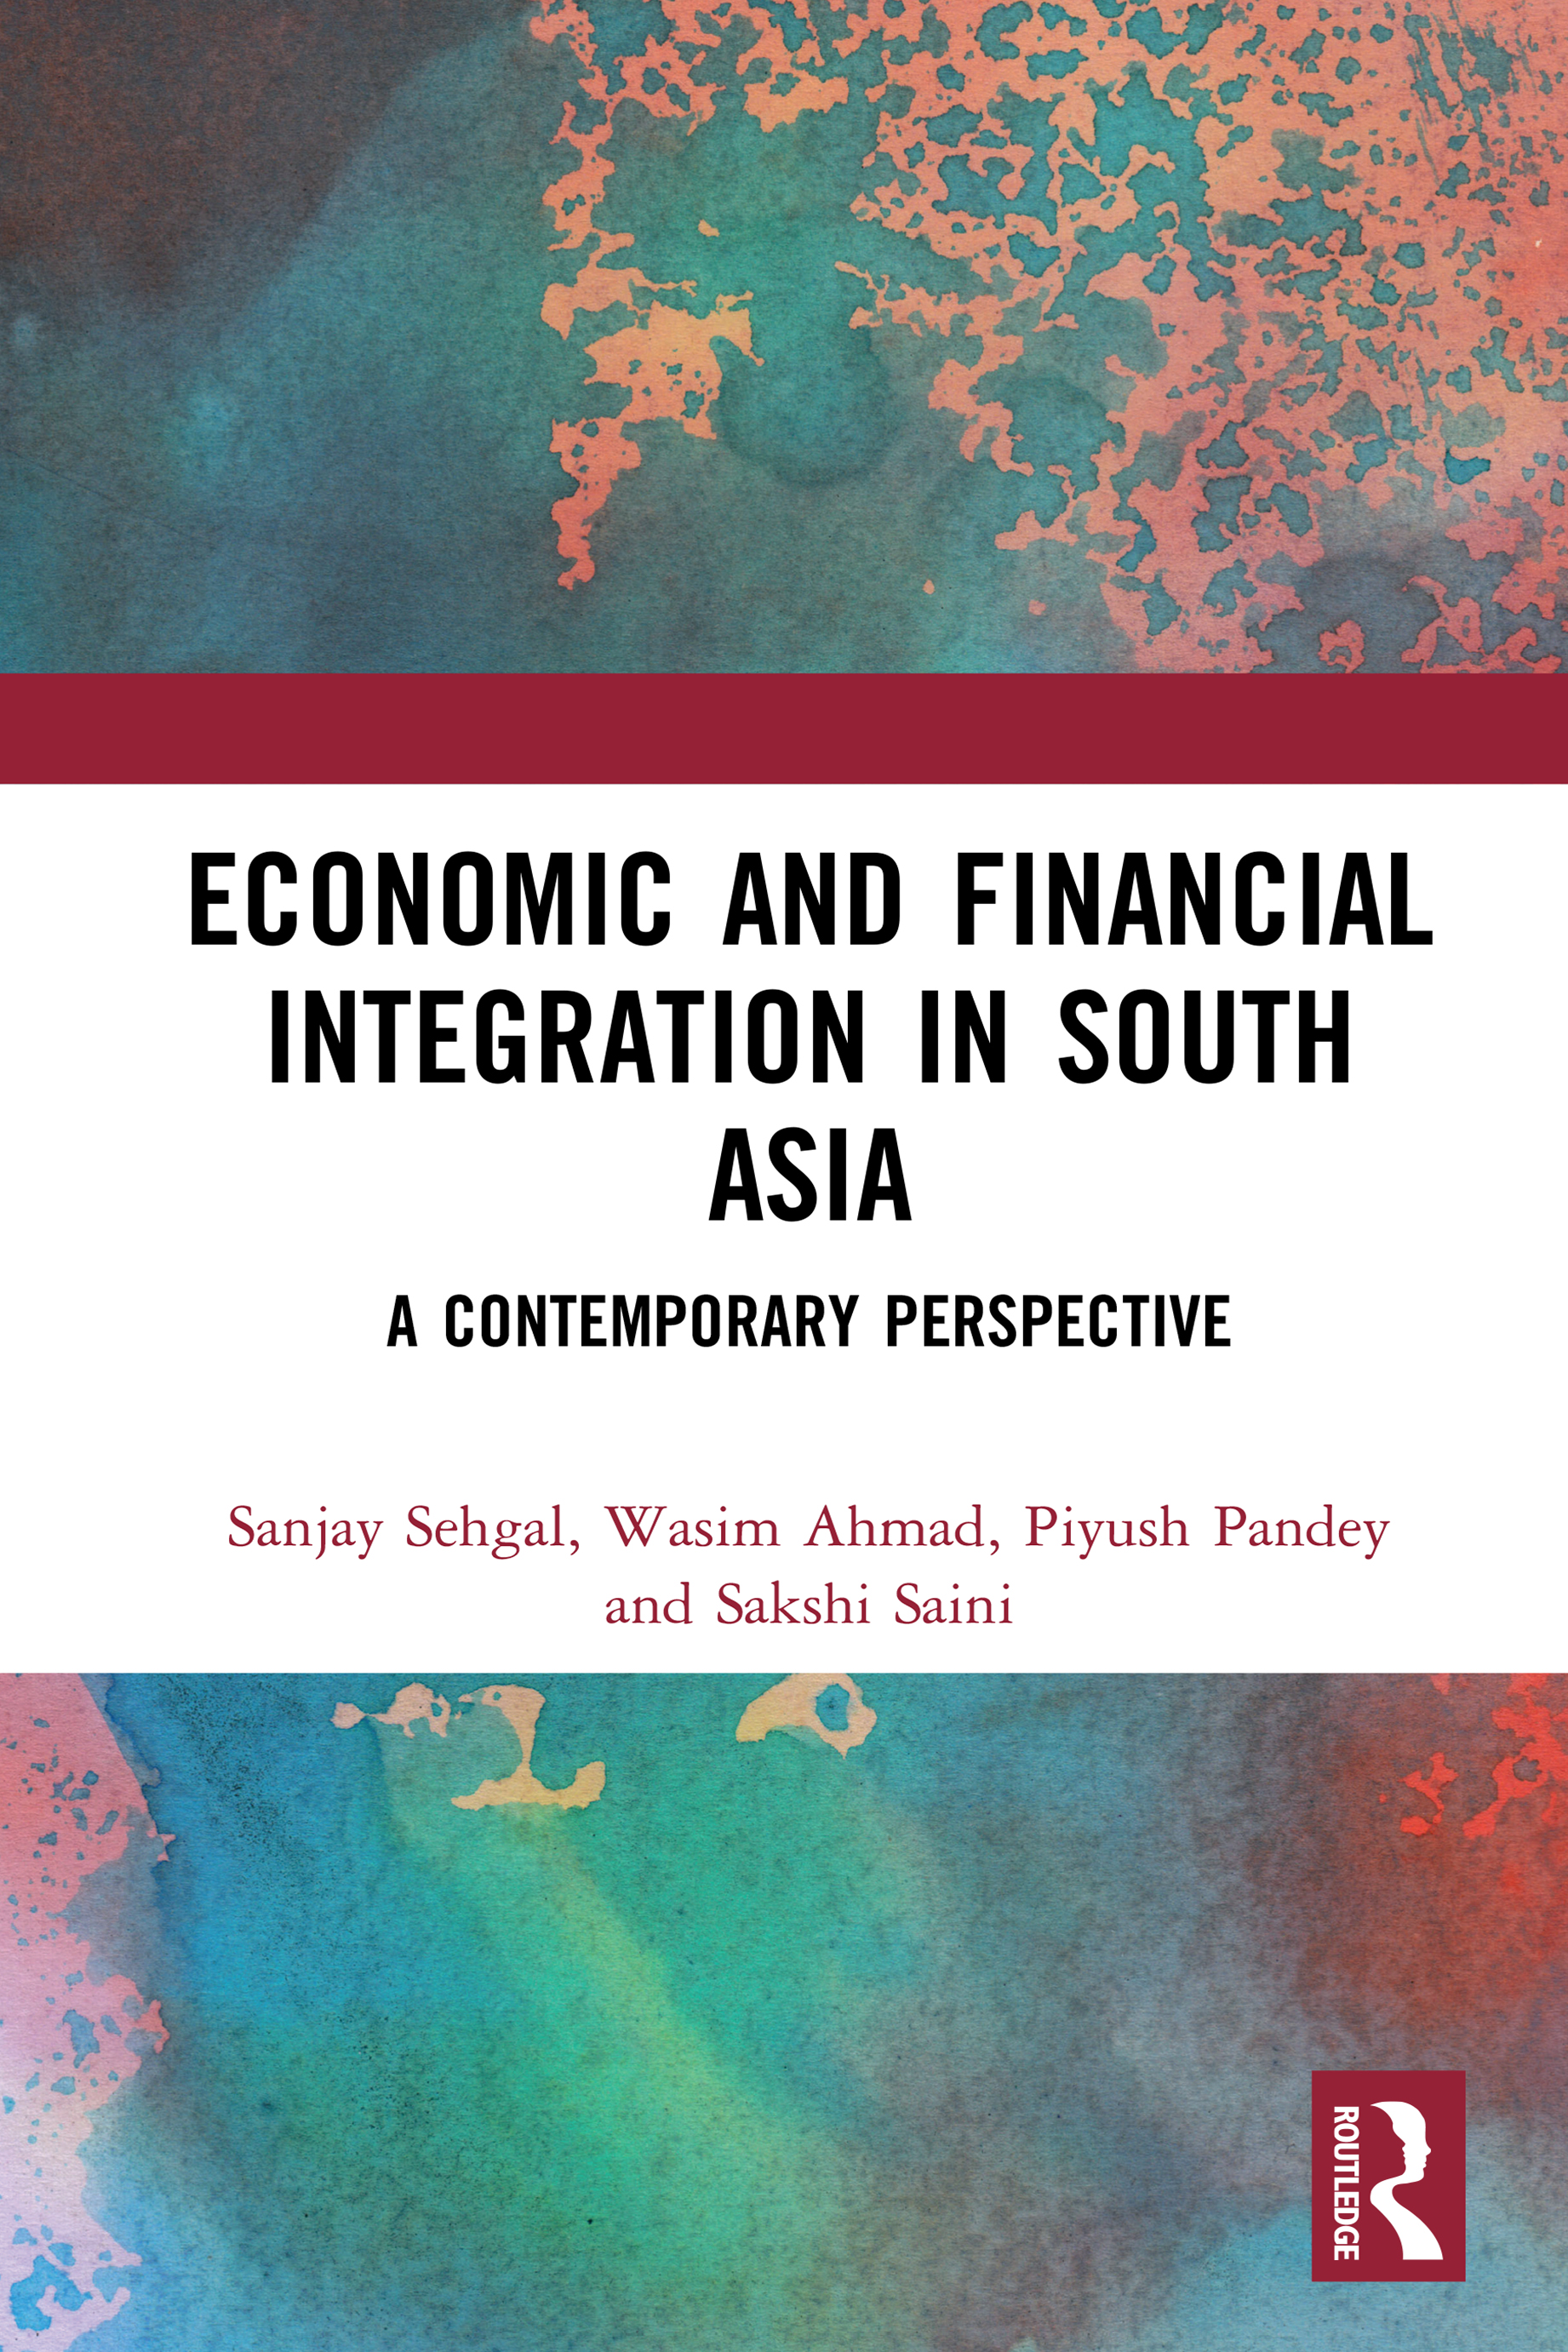 Role of China in South Asian financial integration